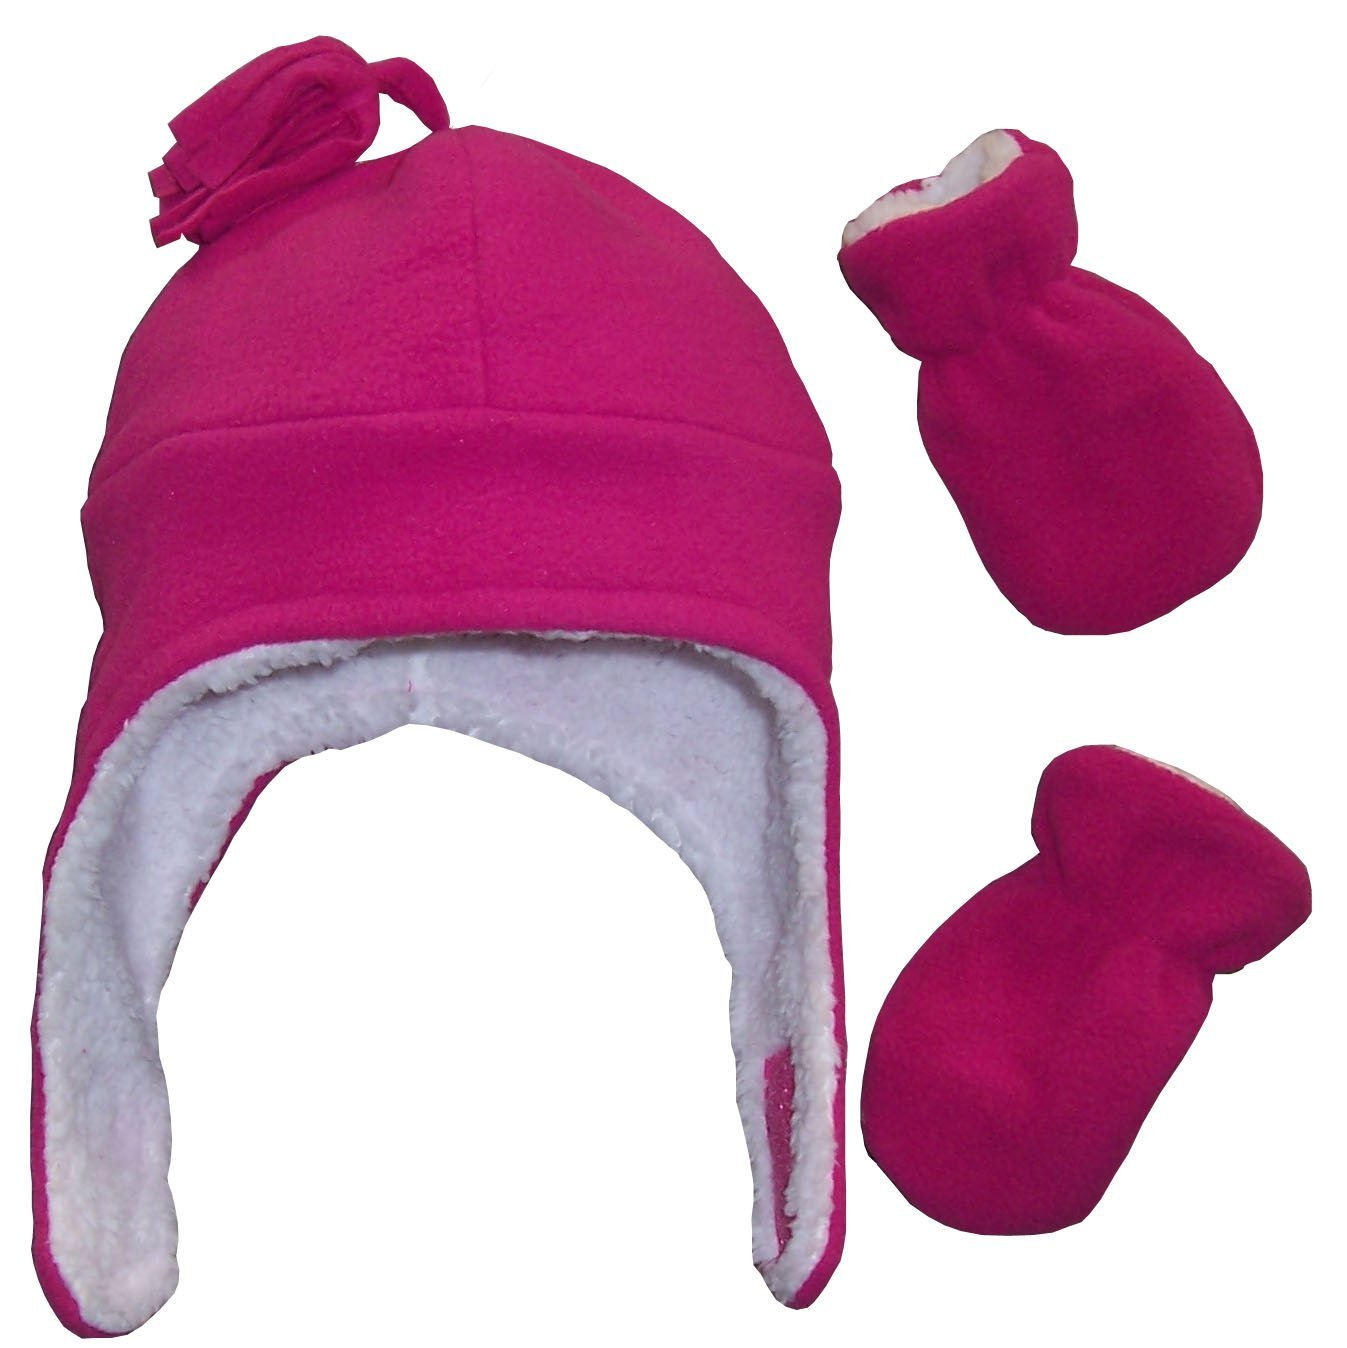 N'Ice Caps Girls Soft Sherpa Lined Micro Fleece Pilot Hat and Mitten Set 2753-SHG